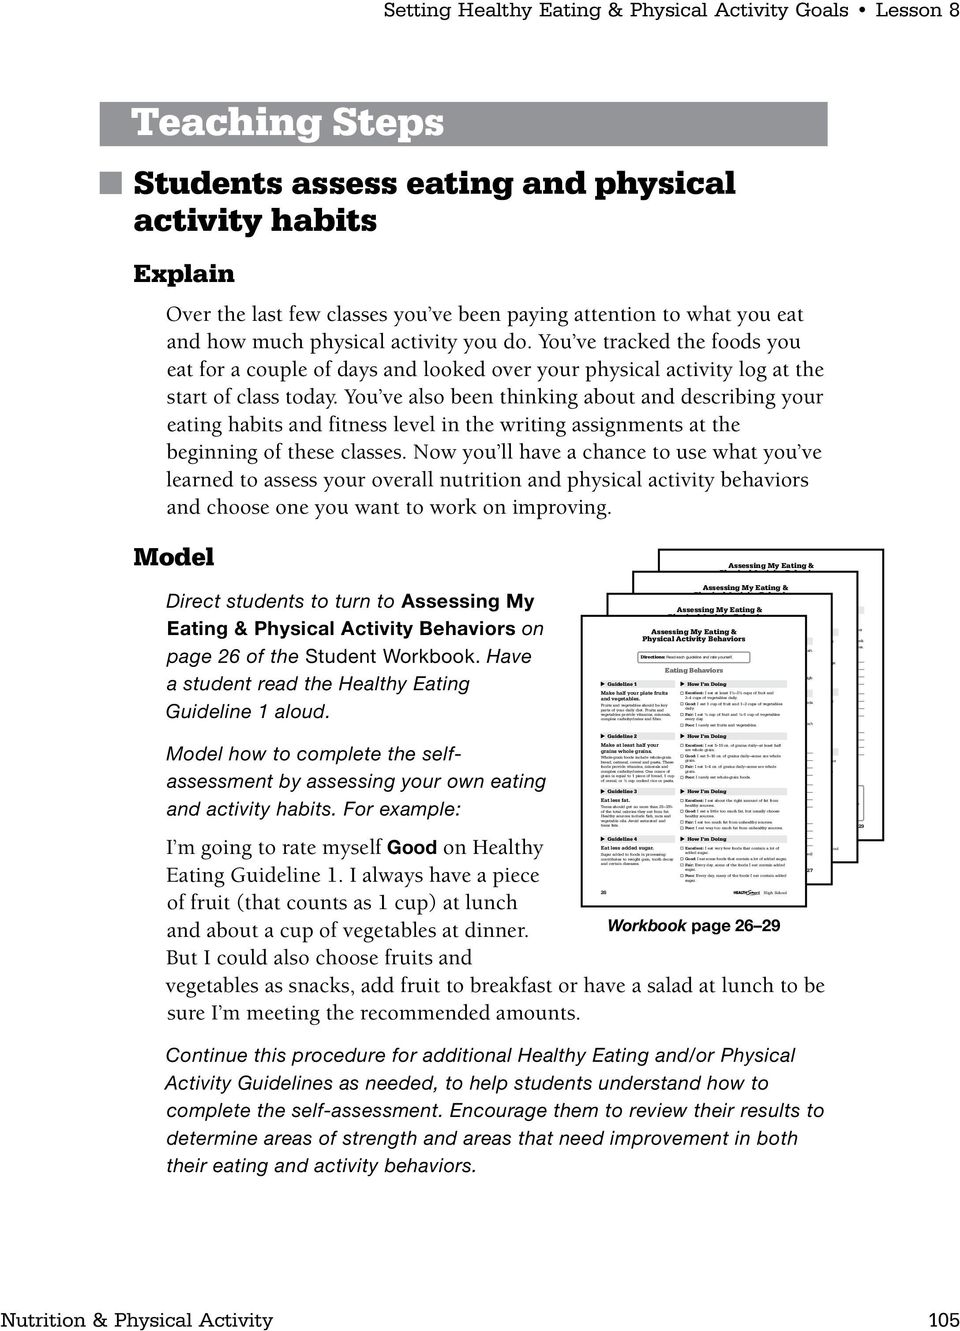 Setting Healthy Eating & Physical Activity Goals Lesson 8 Teaching Steps Students assess eating and physical activity habits Explain Over the last few classes you ve been paying attention to what you